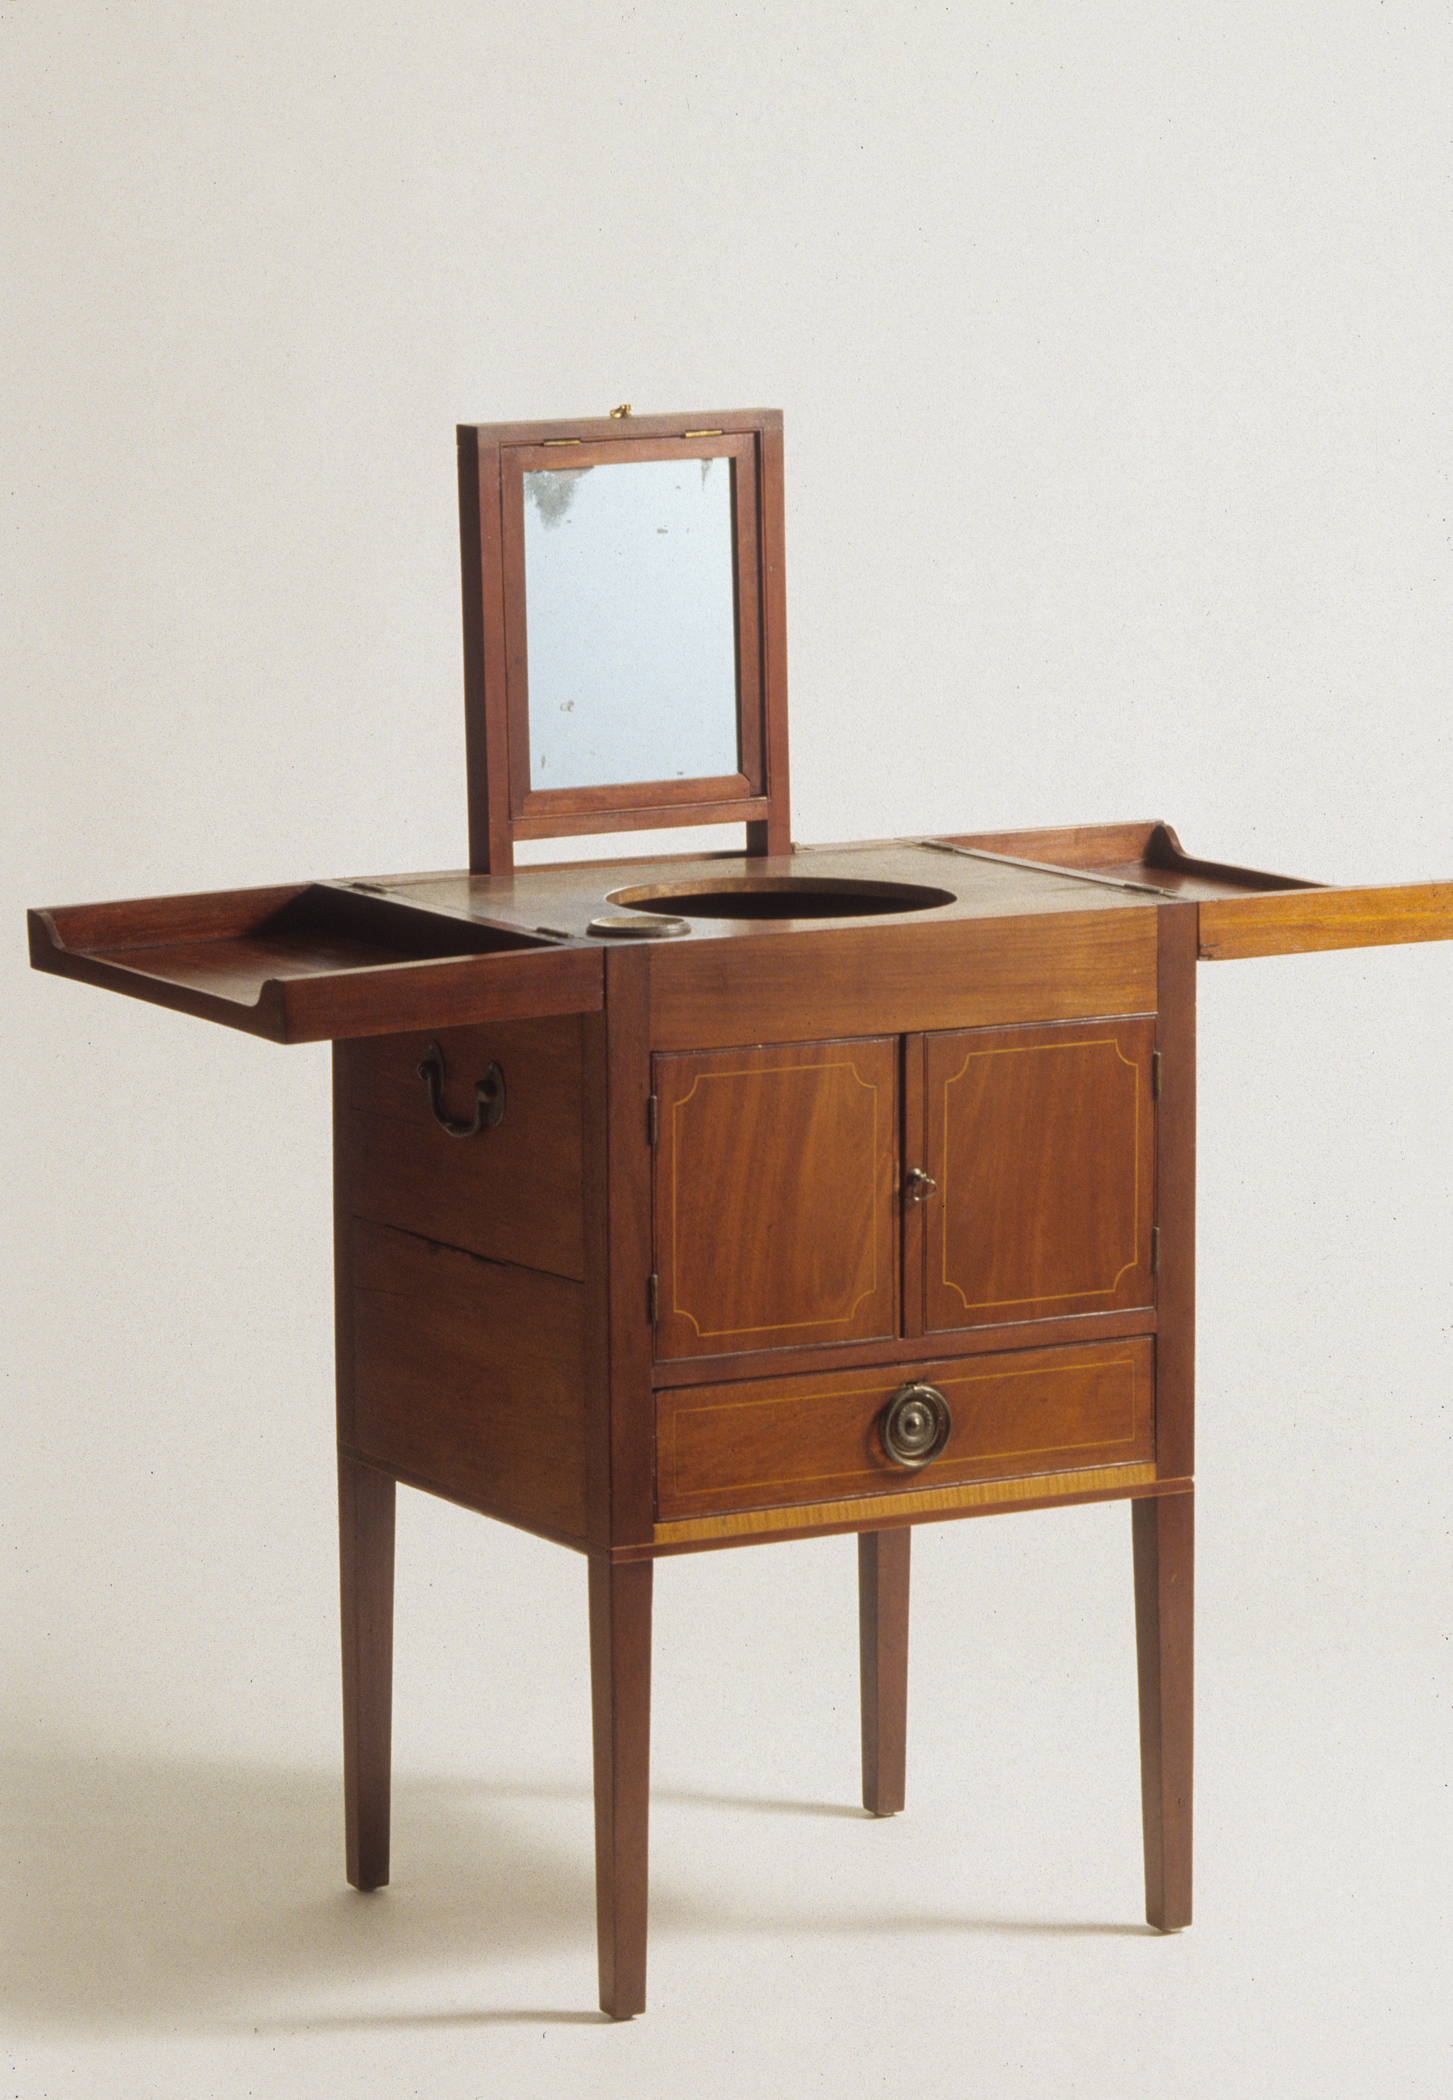 1969.1677 Stand, Wash stand, front view 1